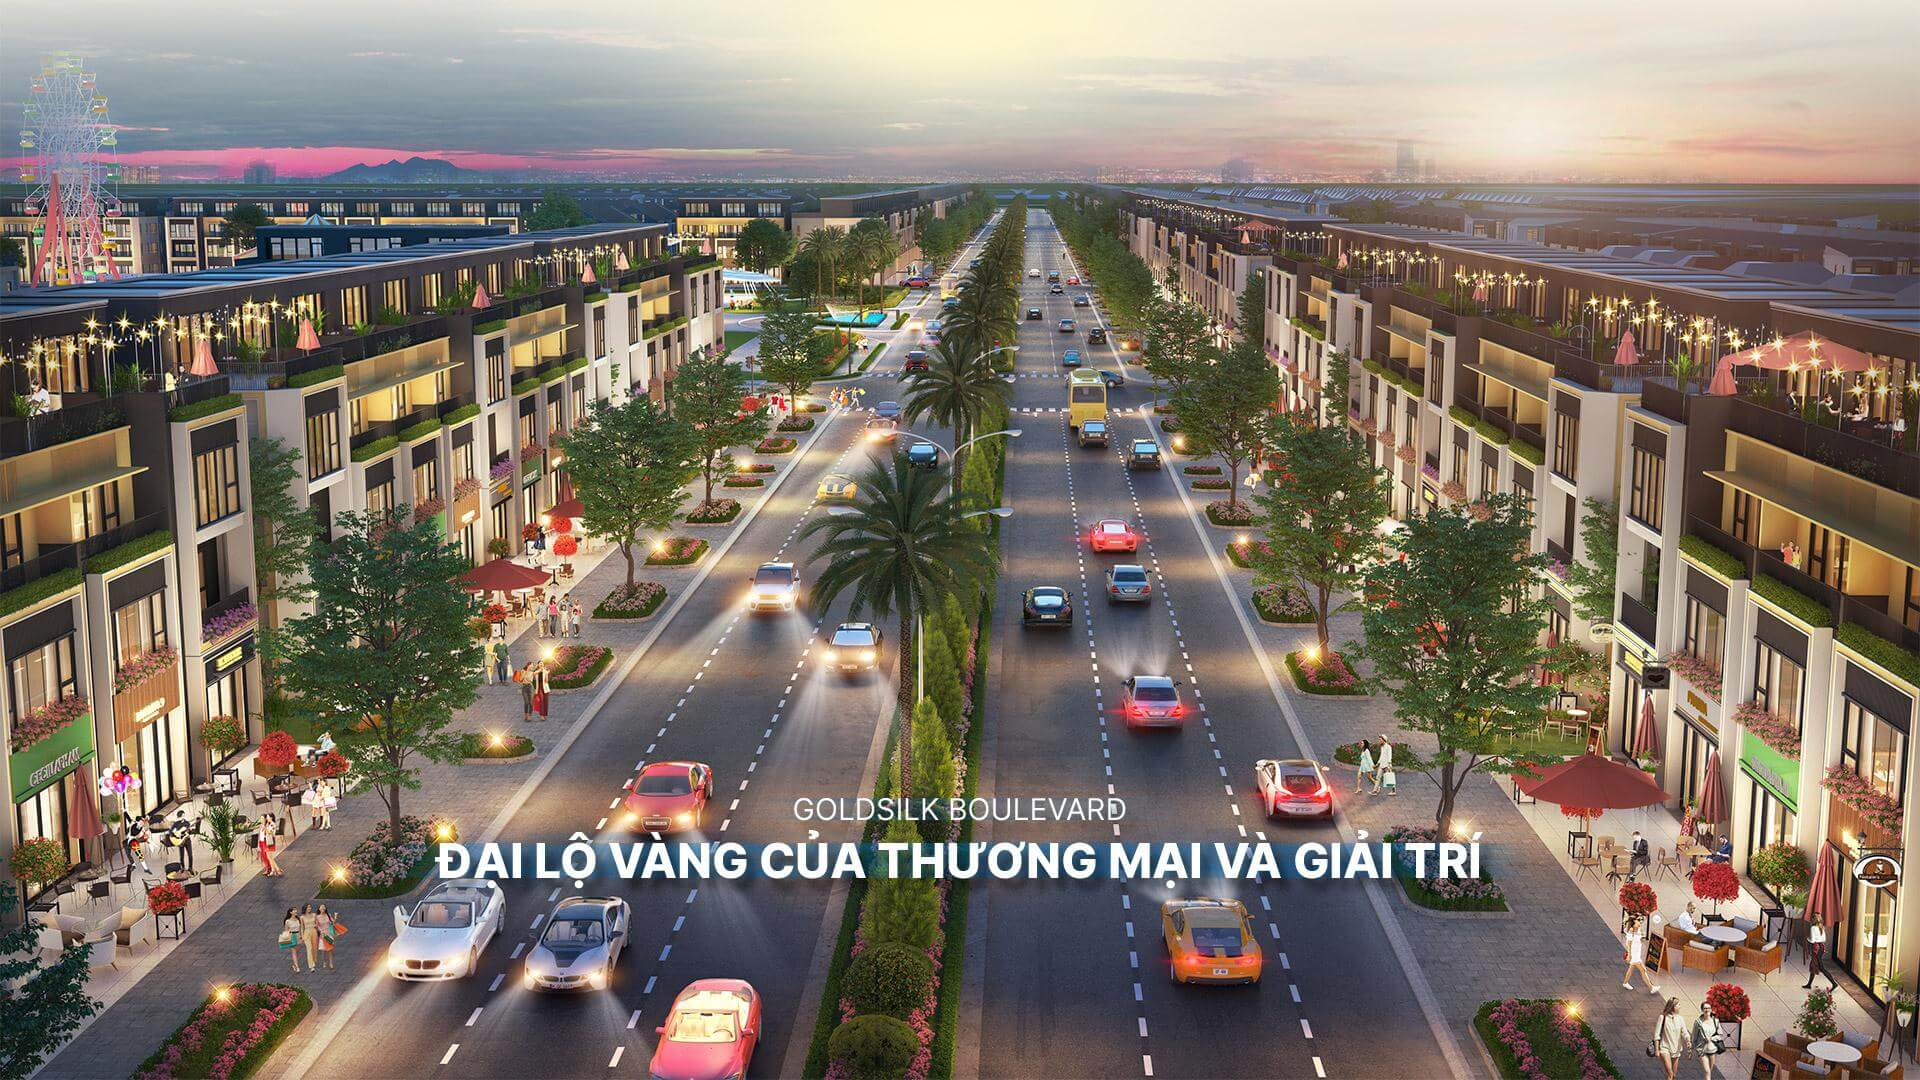 dai-lo-vang-35m-shophouse-truc-chinh-gemskyworld